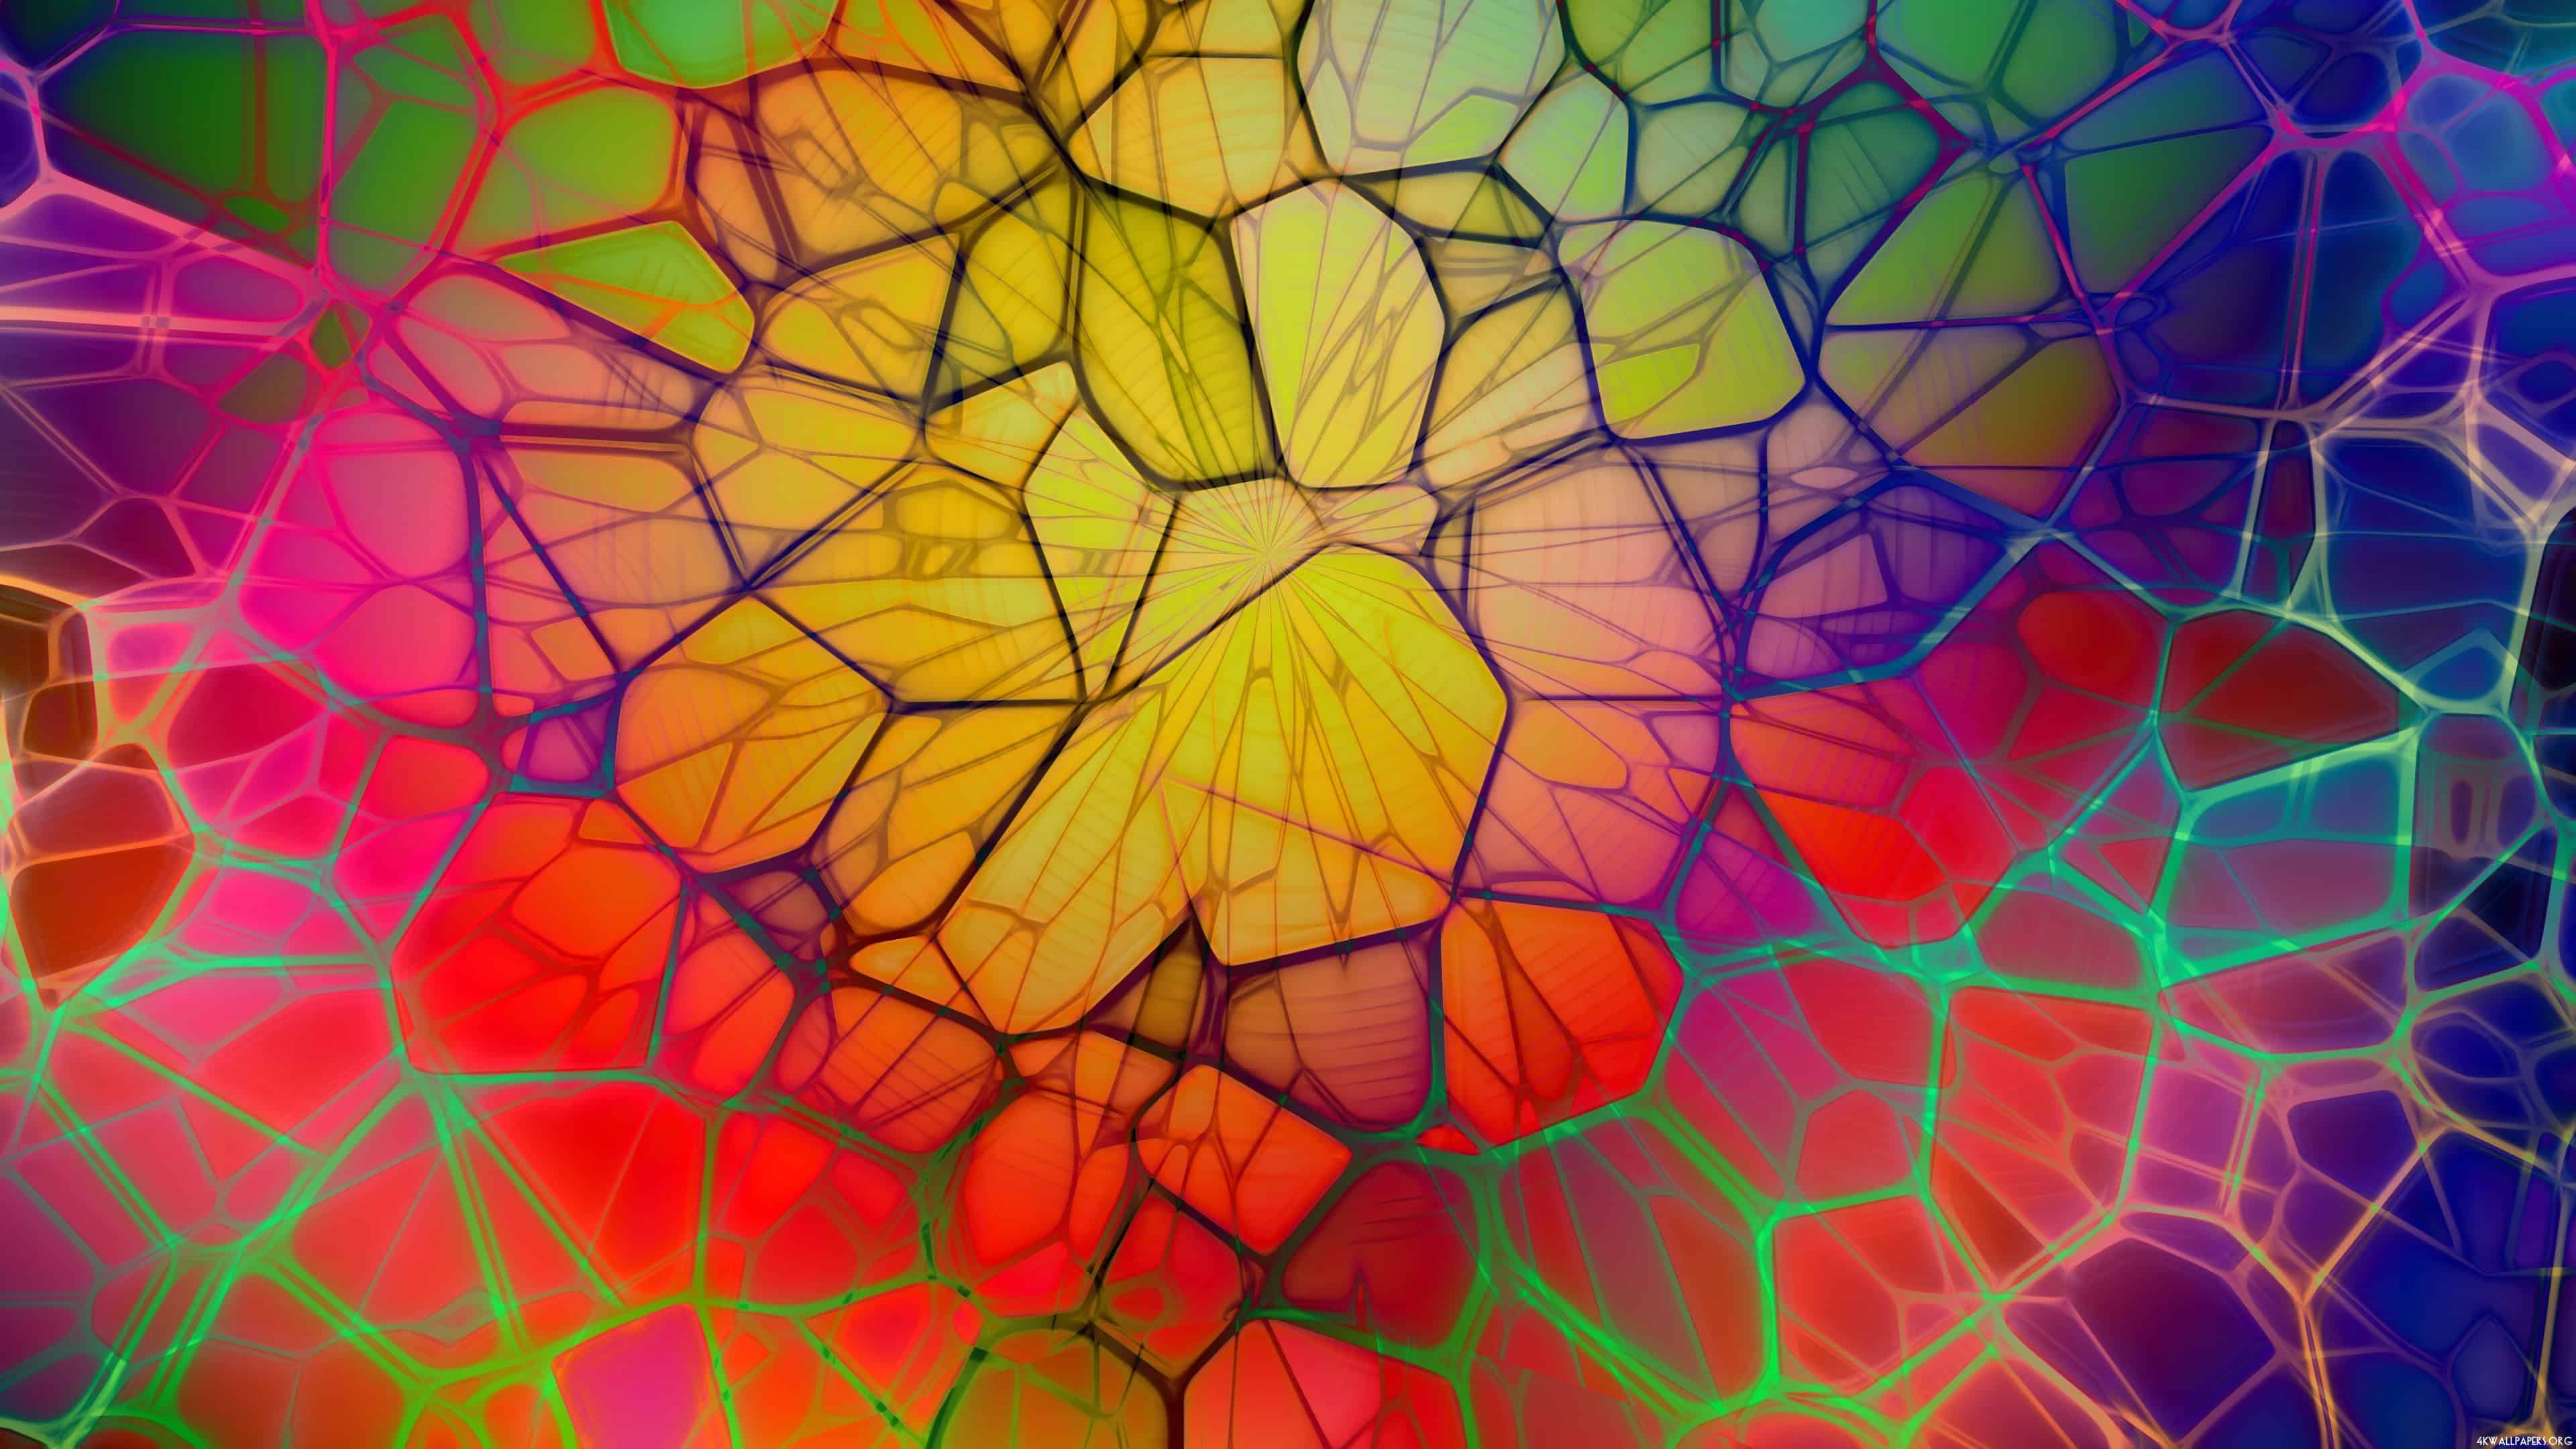 Colorful Kaleidoscope UHD 4K Wallpaper   Pixelz colorful kaleidoscope uhd 4k wallpaper